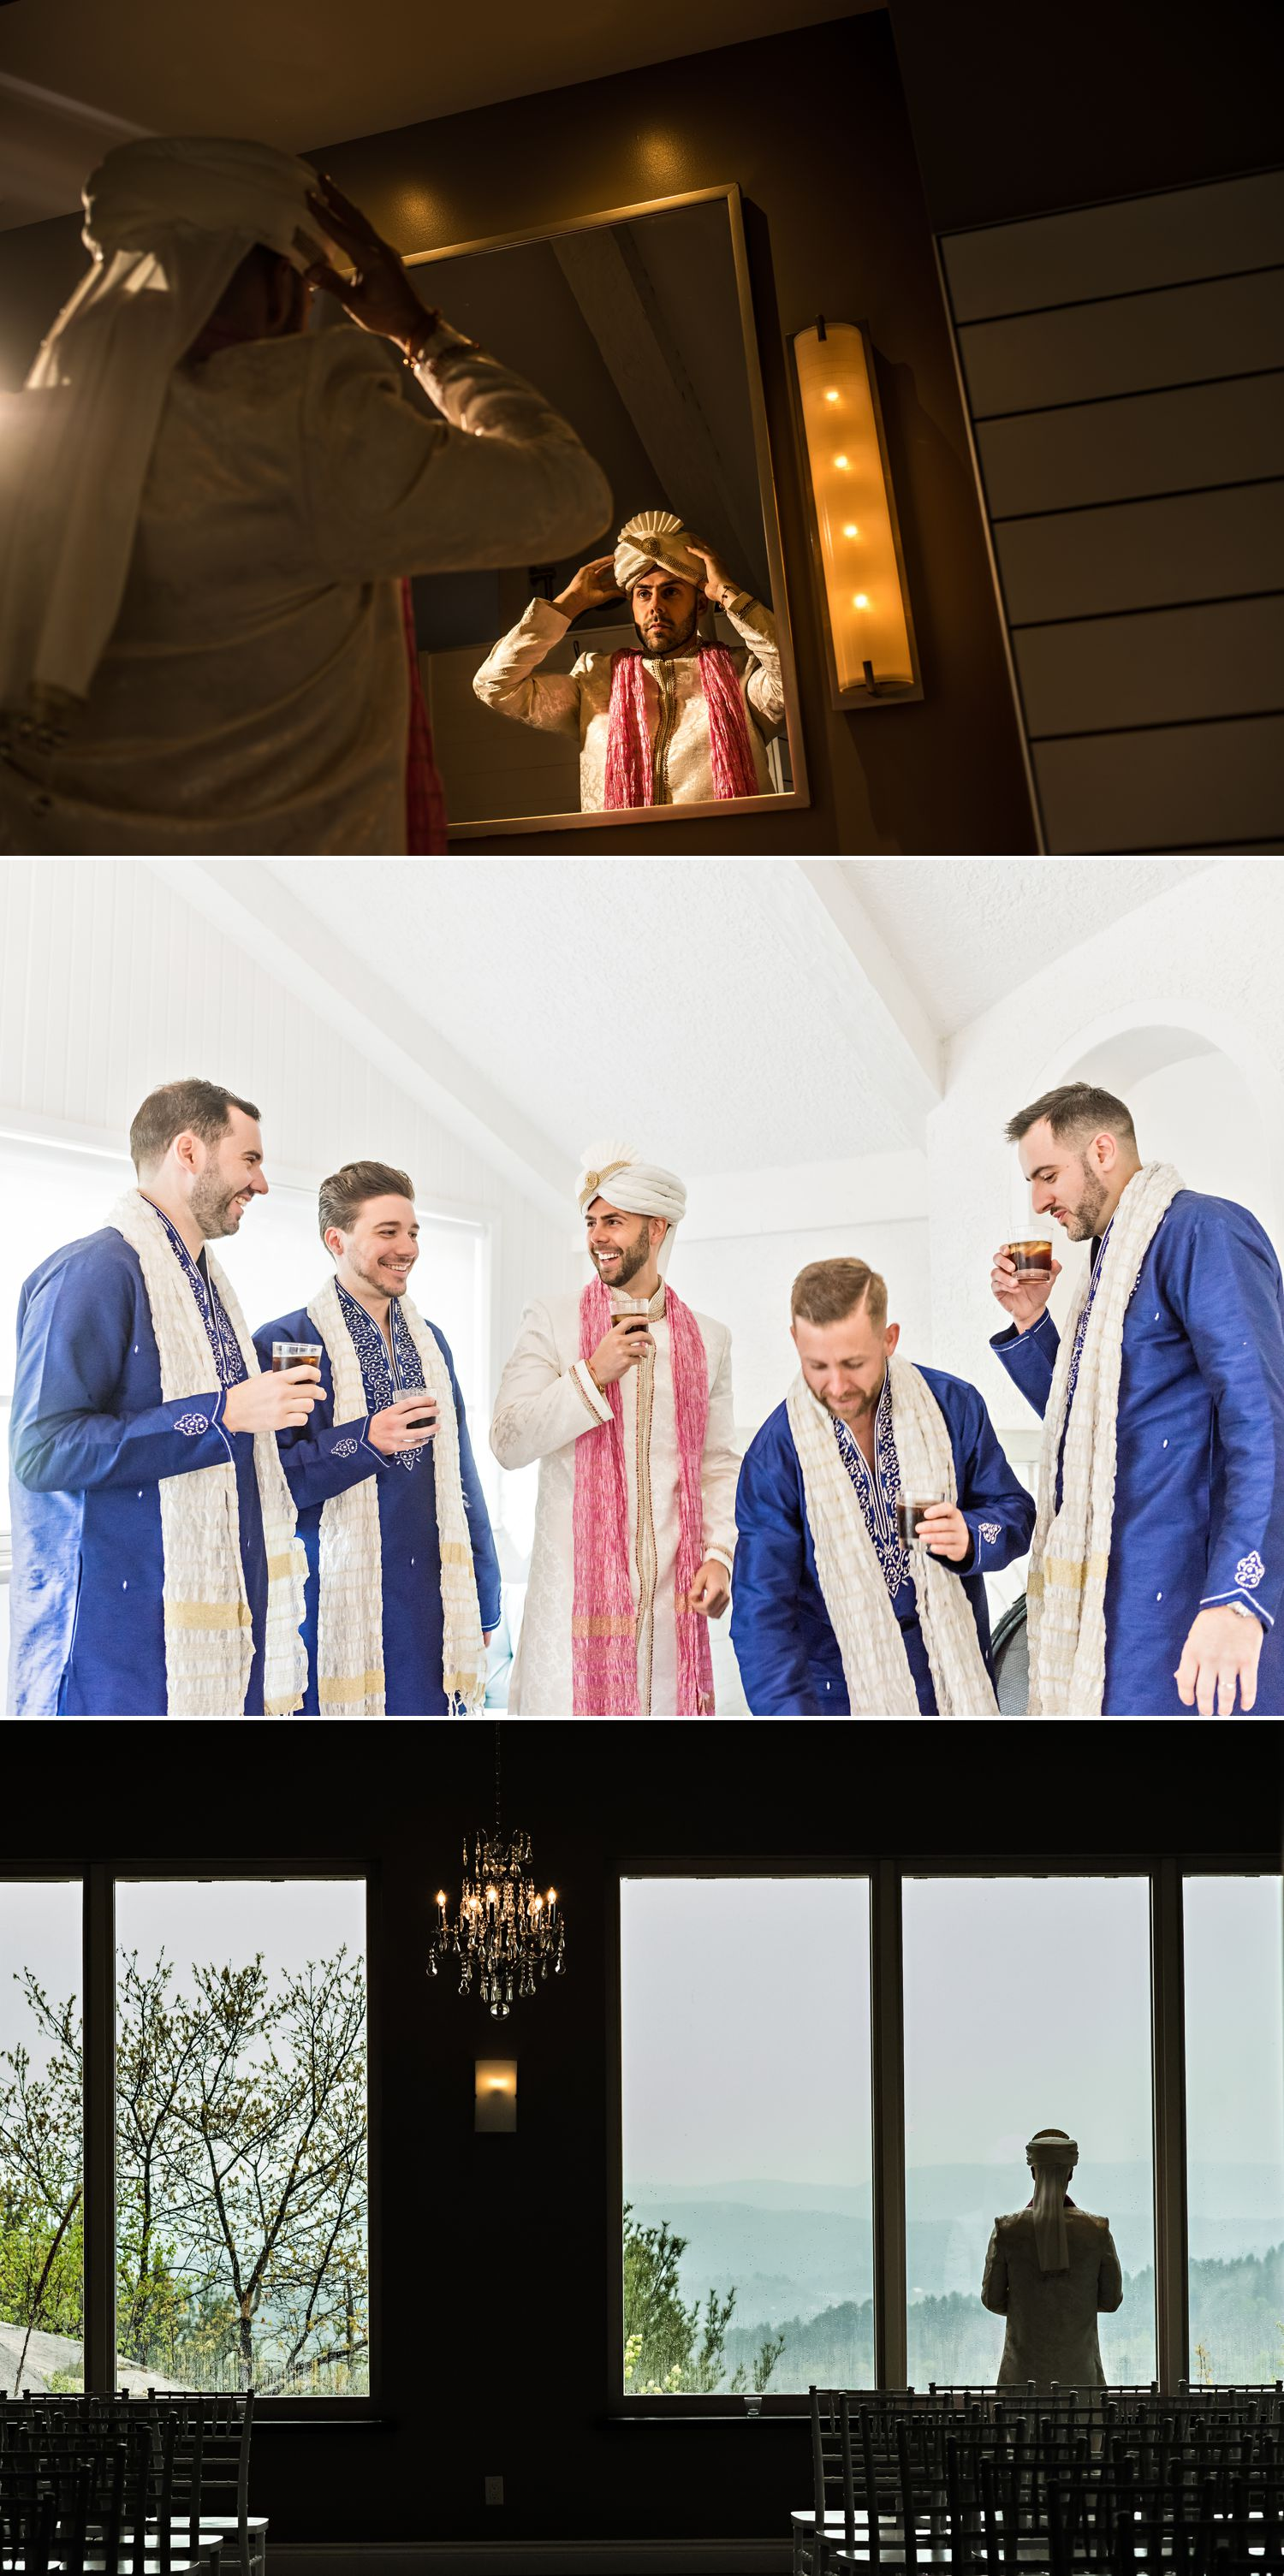 The groom with his groomsmen getting ready in their traditional Indian wedding clothes